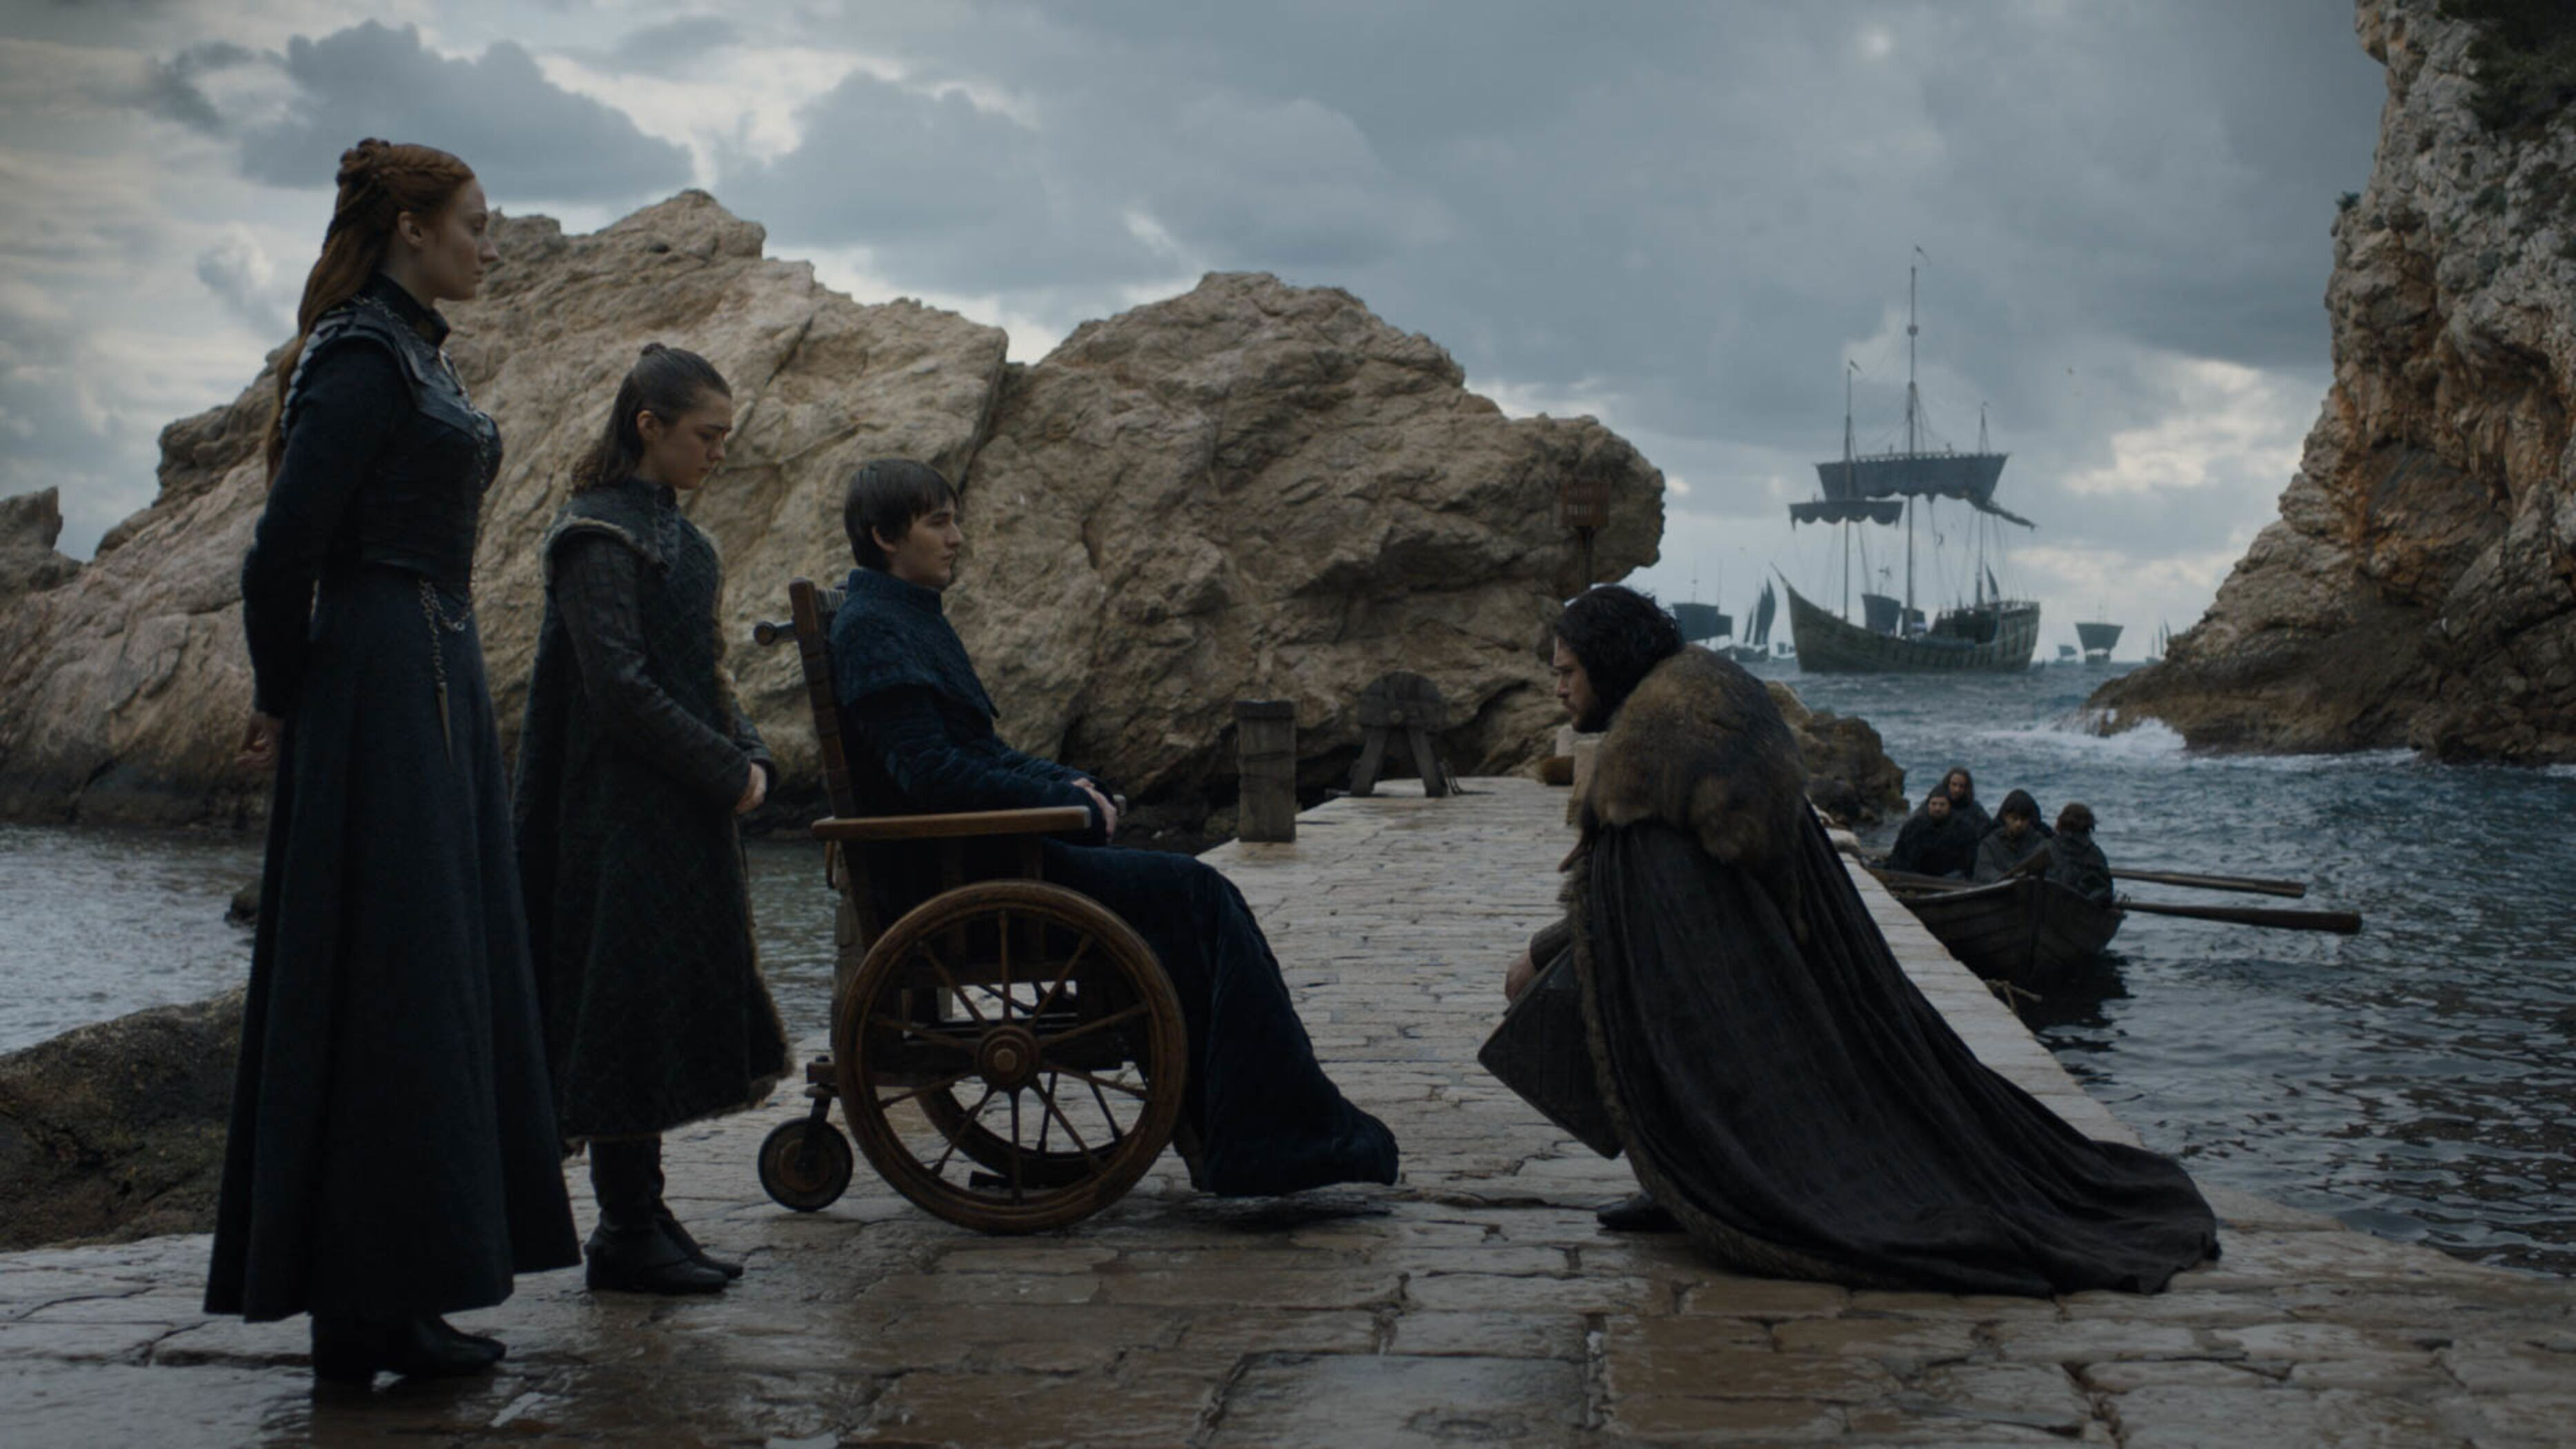 Game of Thrones: The Complete Series on Blu-ray review: Our watch is far from over